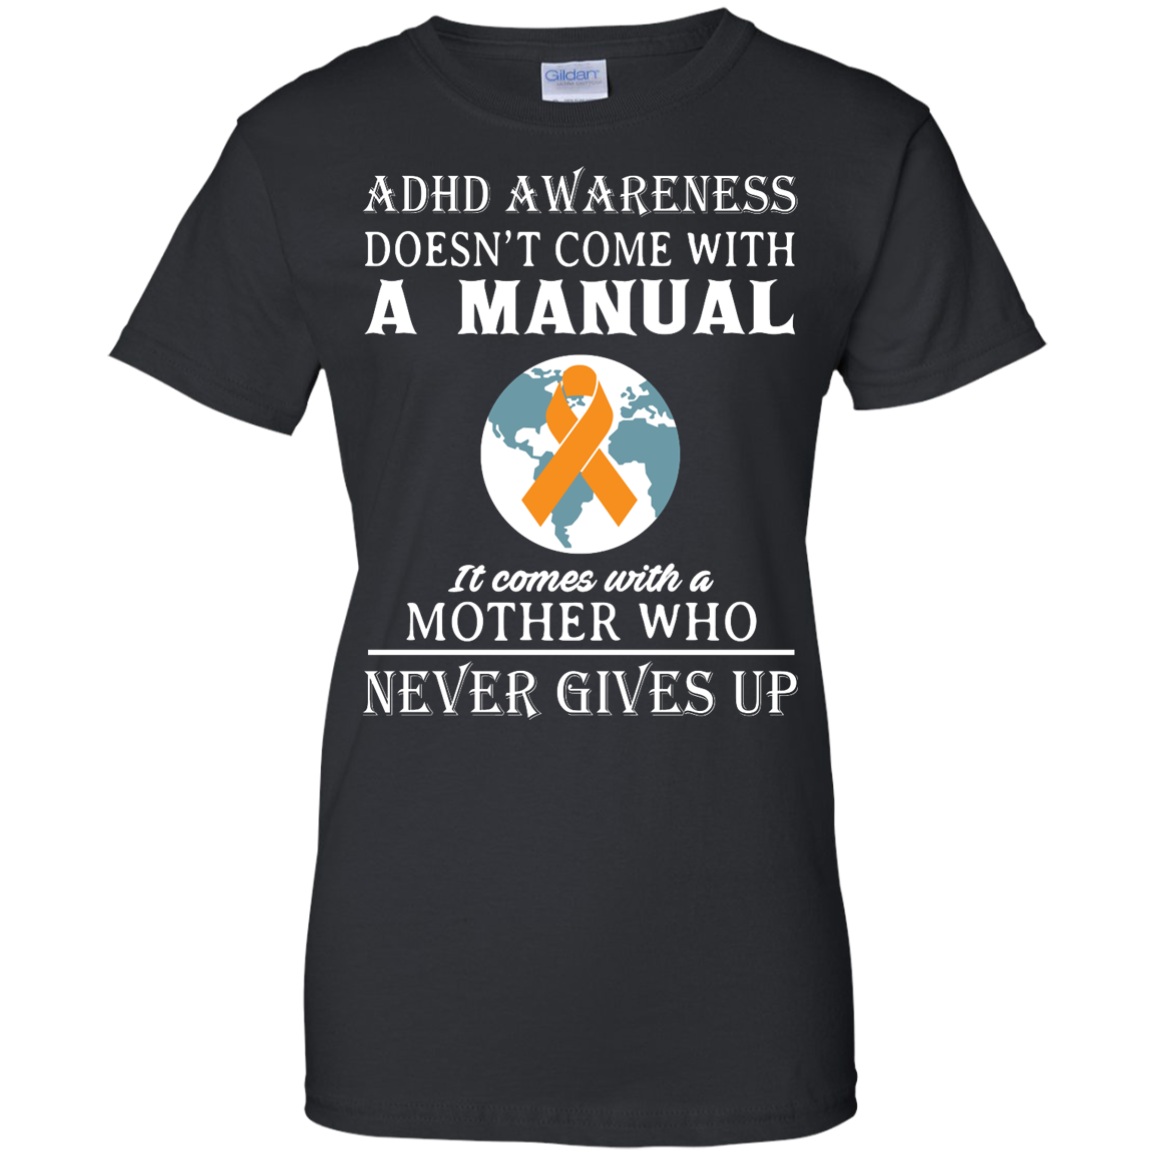 image 276px Adhd Awareness Shirt: It Come With a Mother Who Never Gives Up T Shirts